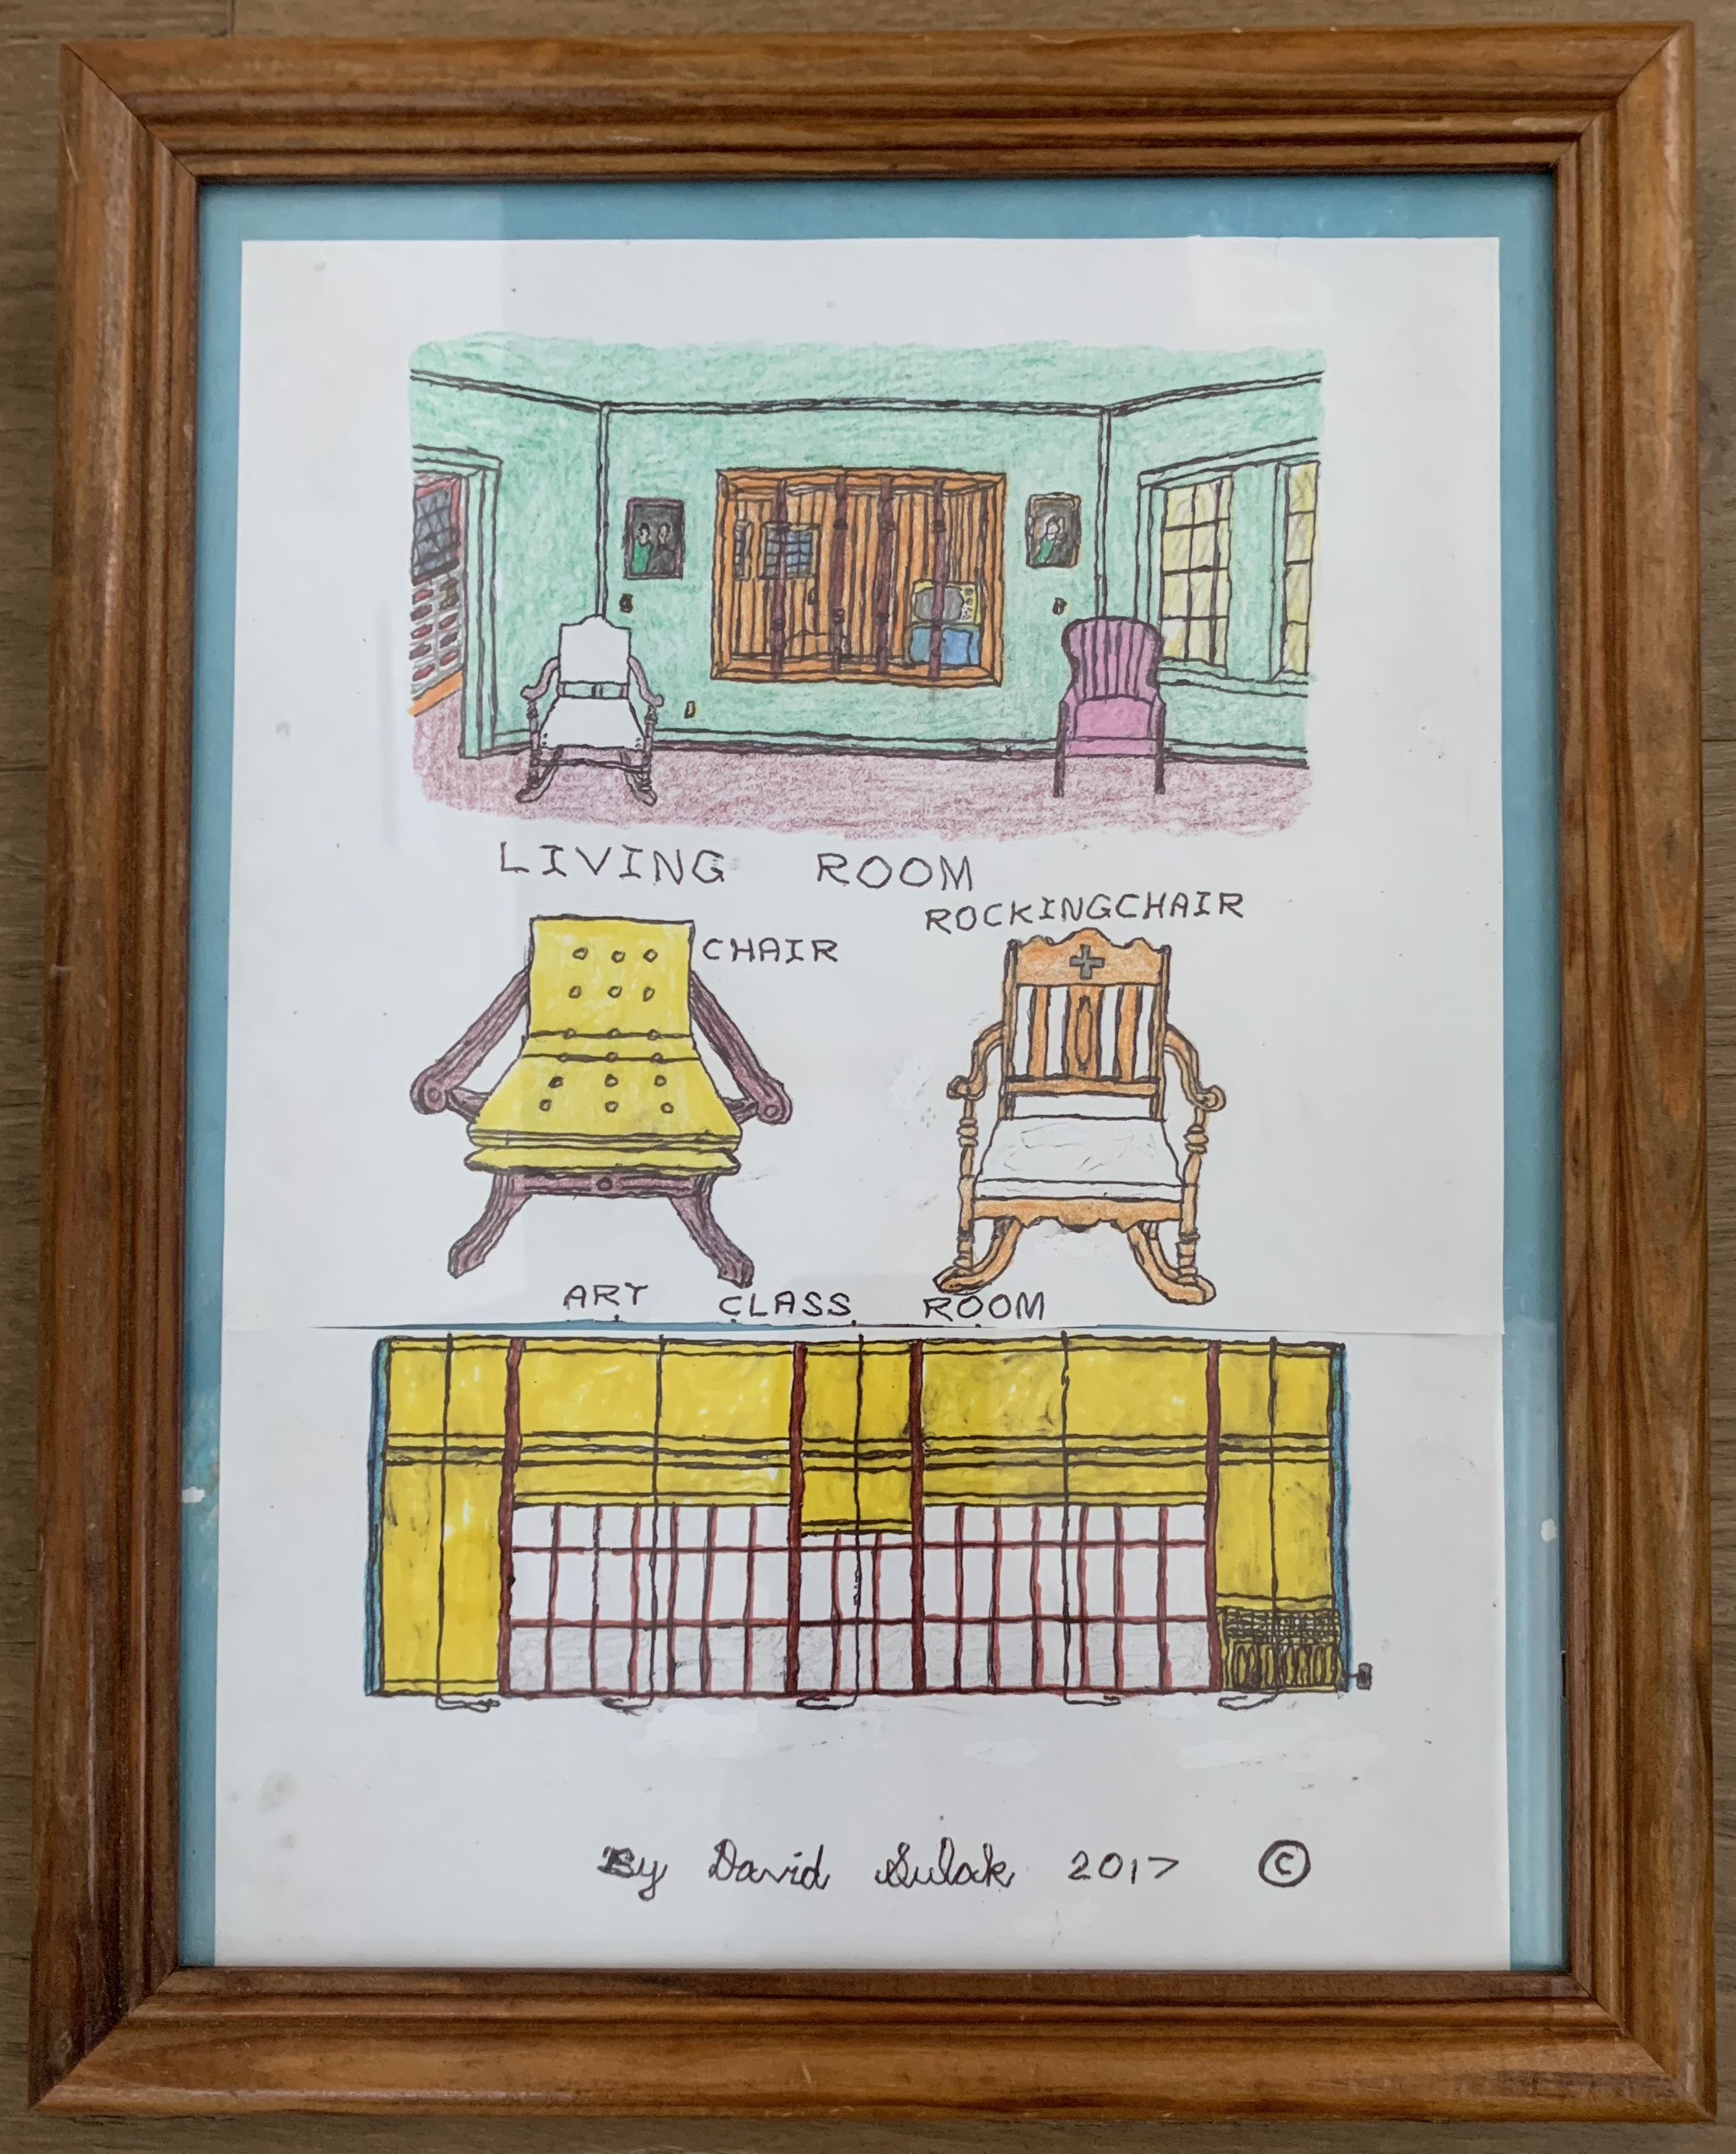 David Sulak_Living Room, Chairs and Art